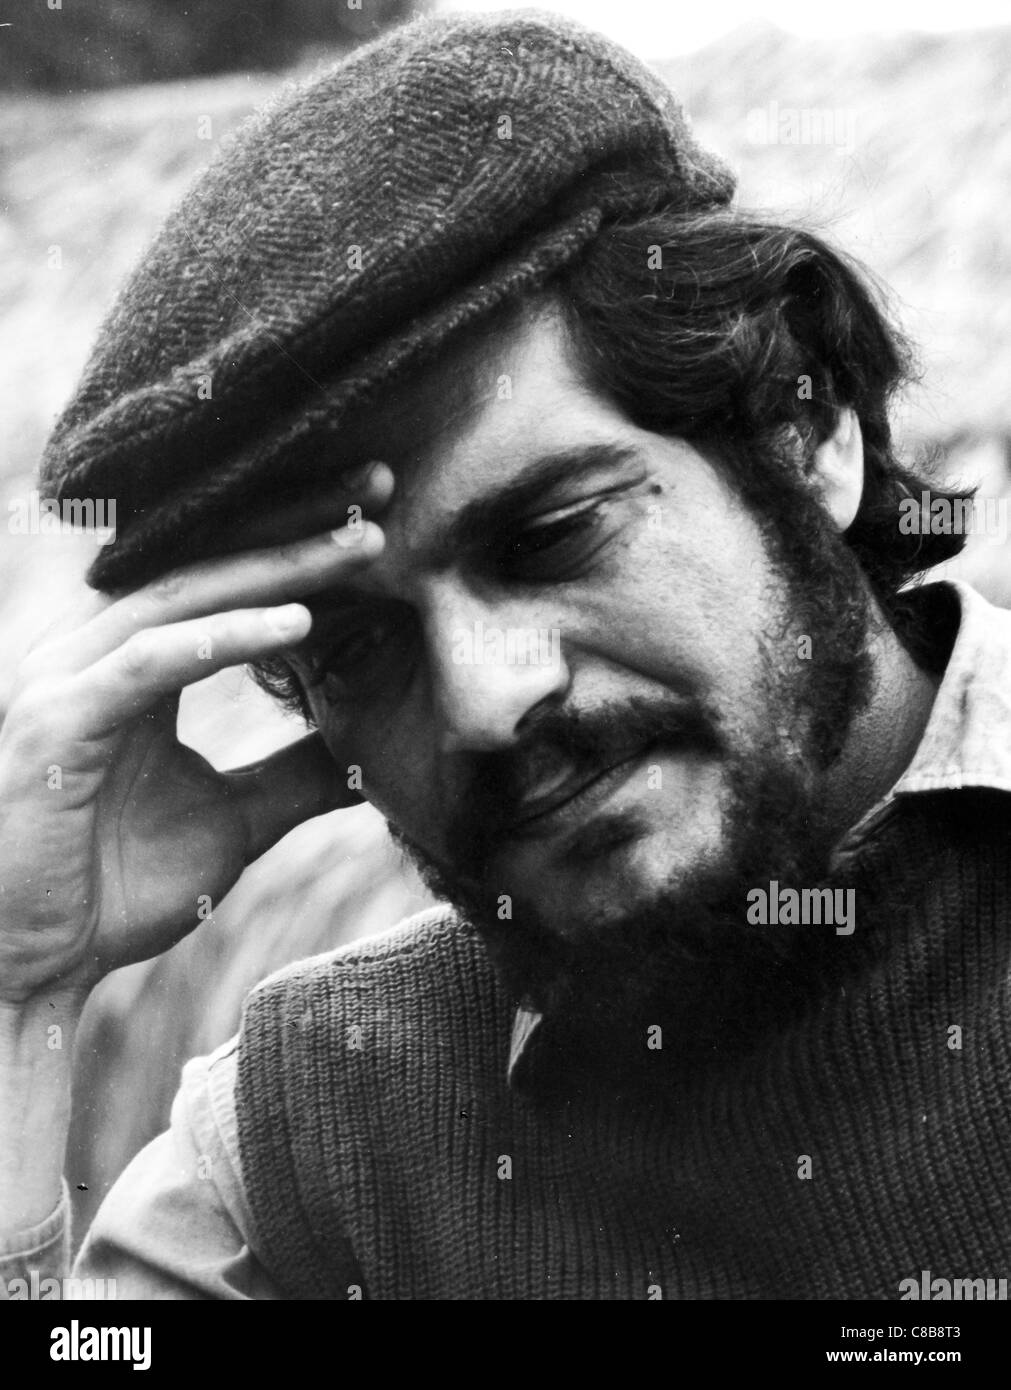 omar sharif,Che! 1969 - Stock Image